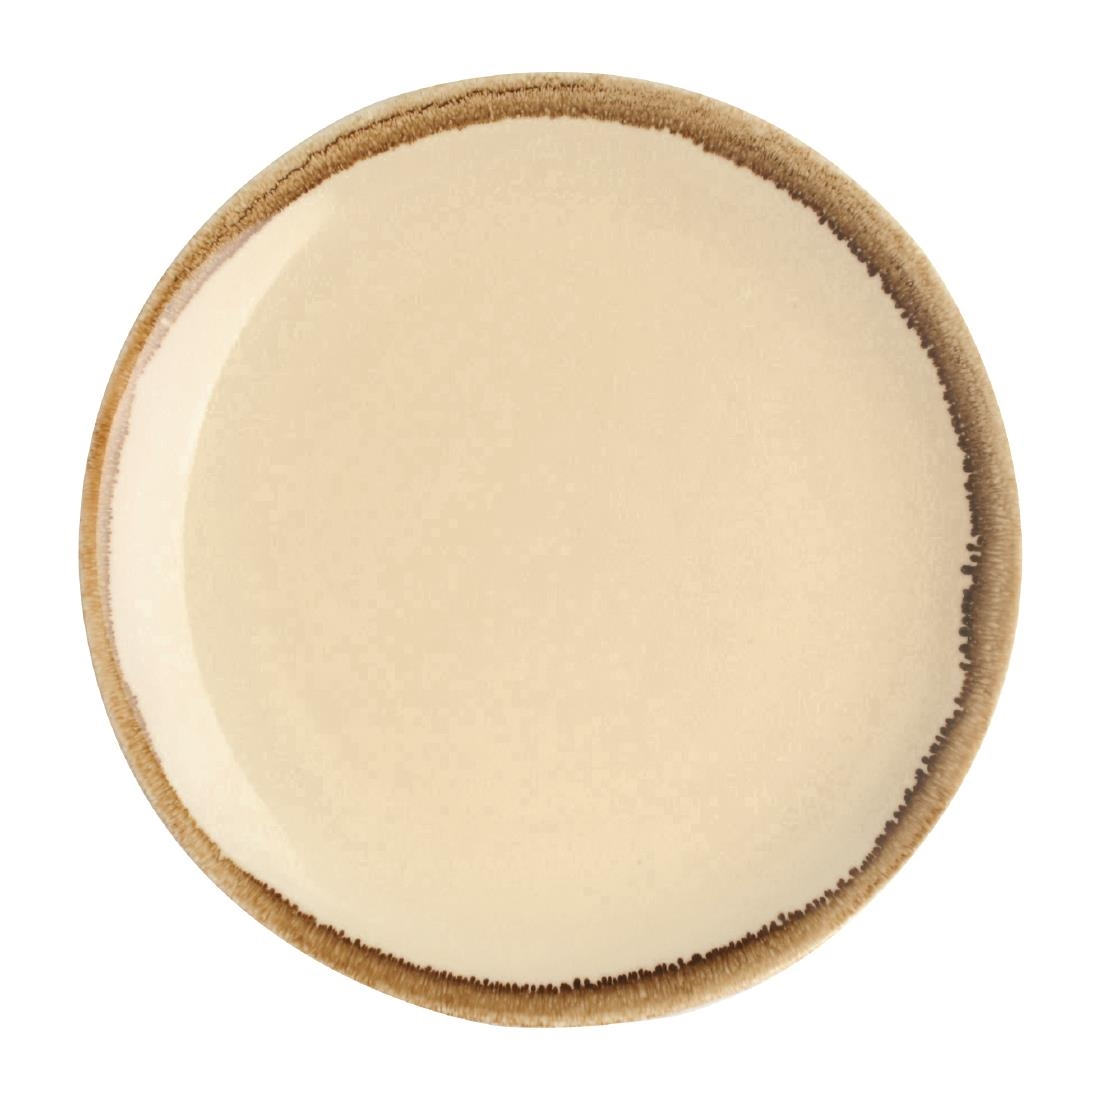 Coupe Plate - Sandstone